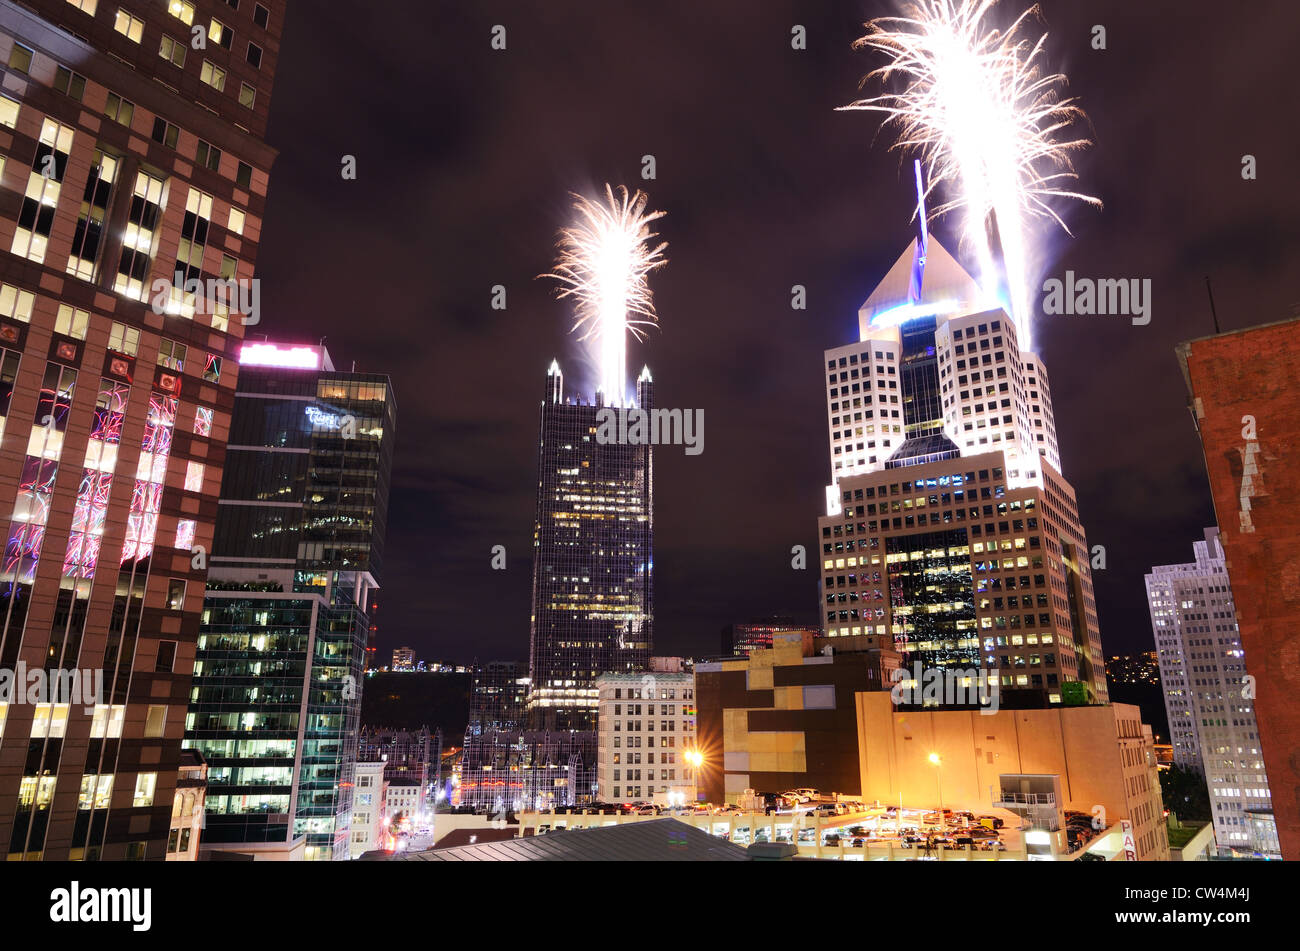 Fireworks launch from skyscrapers in downtown Pittsburgh, Pennsylvania, USA. Stock Photo